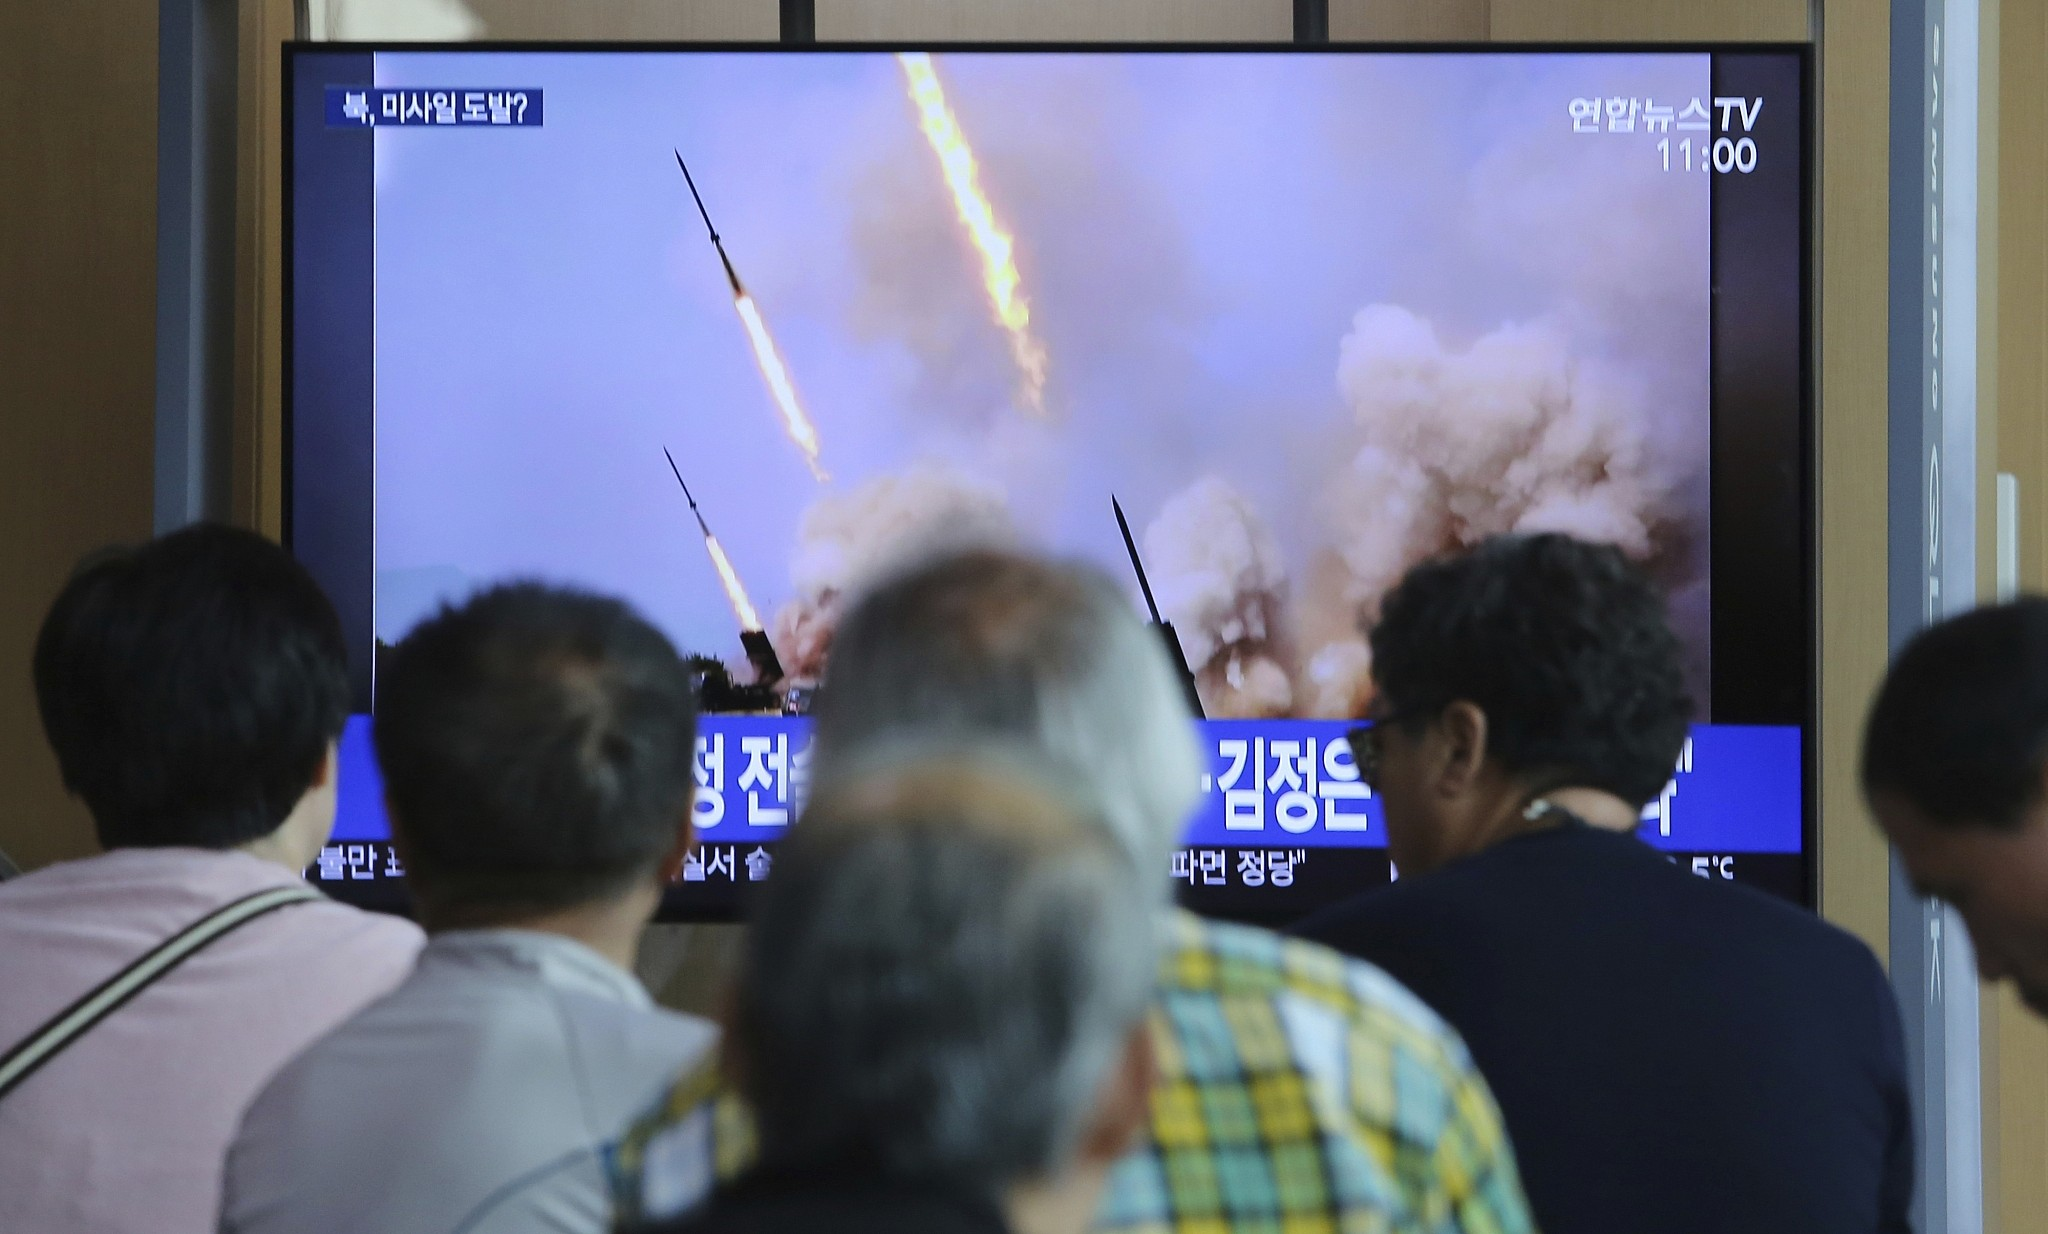 What missile? United States and Koreas play down weapons test